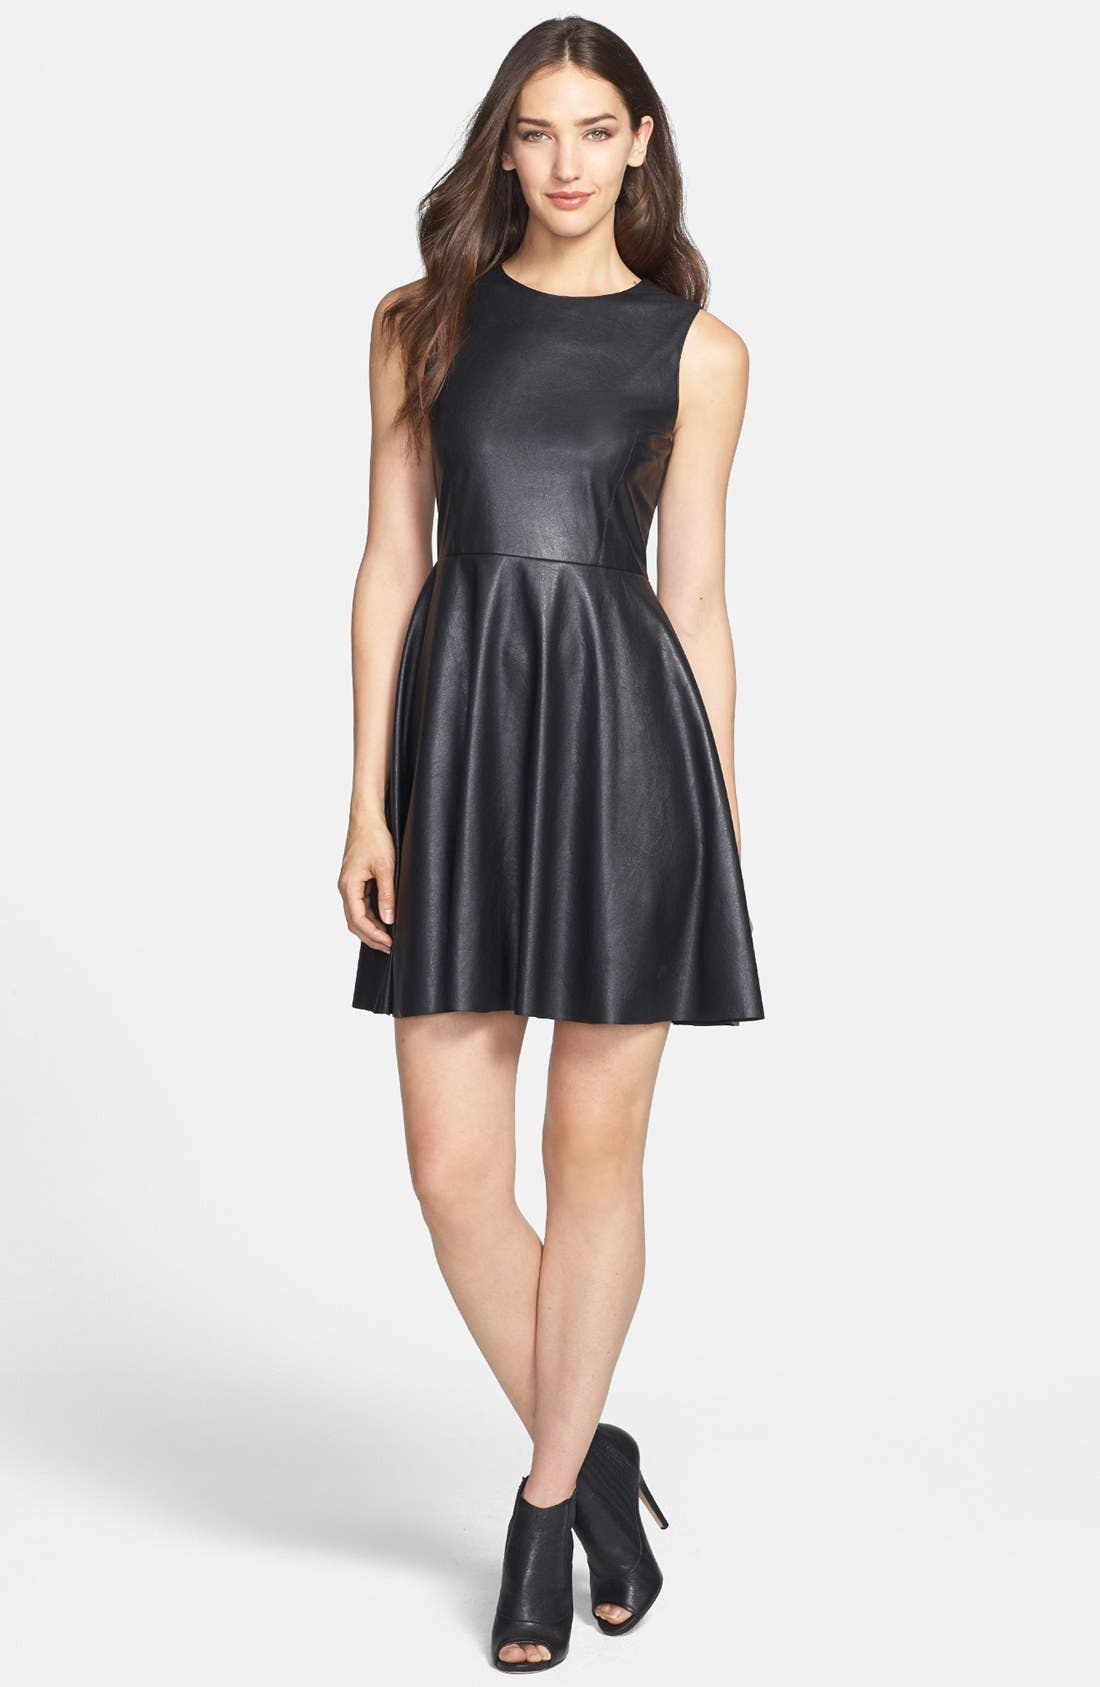 Alternate Image 1 Selected - B44 Dressed by Bailey 44 'Betsy' Faux Leather Fit & Flare Dress